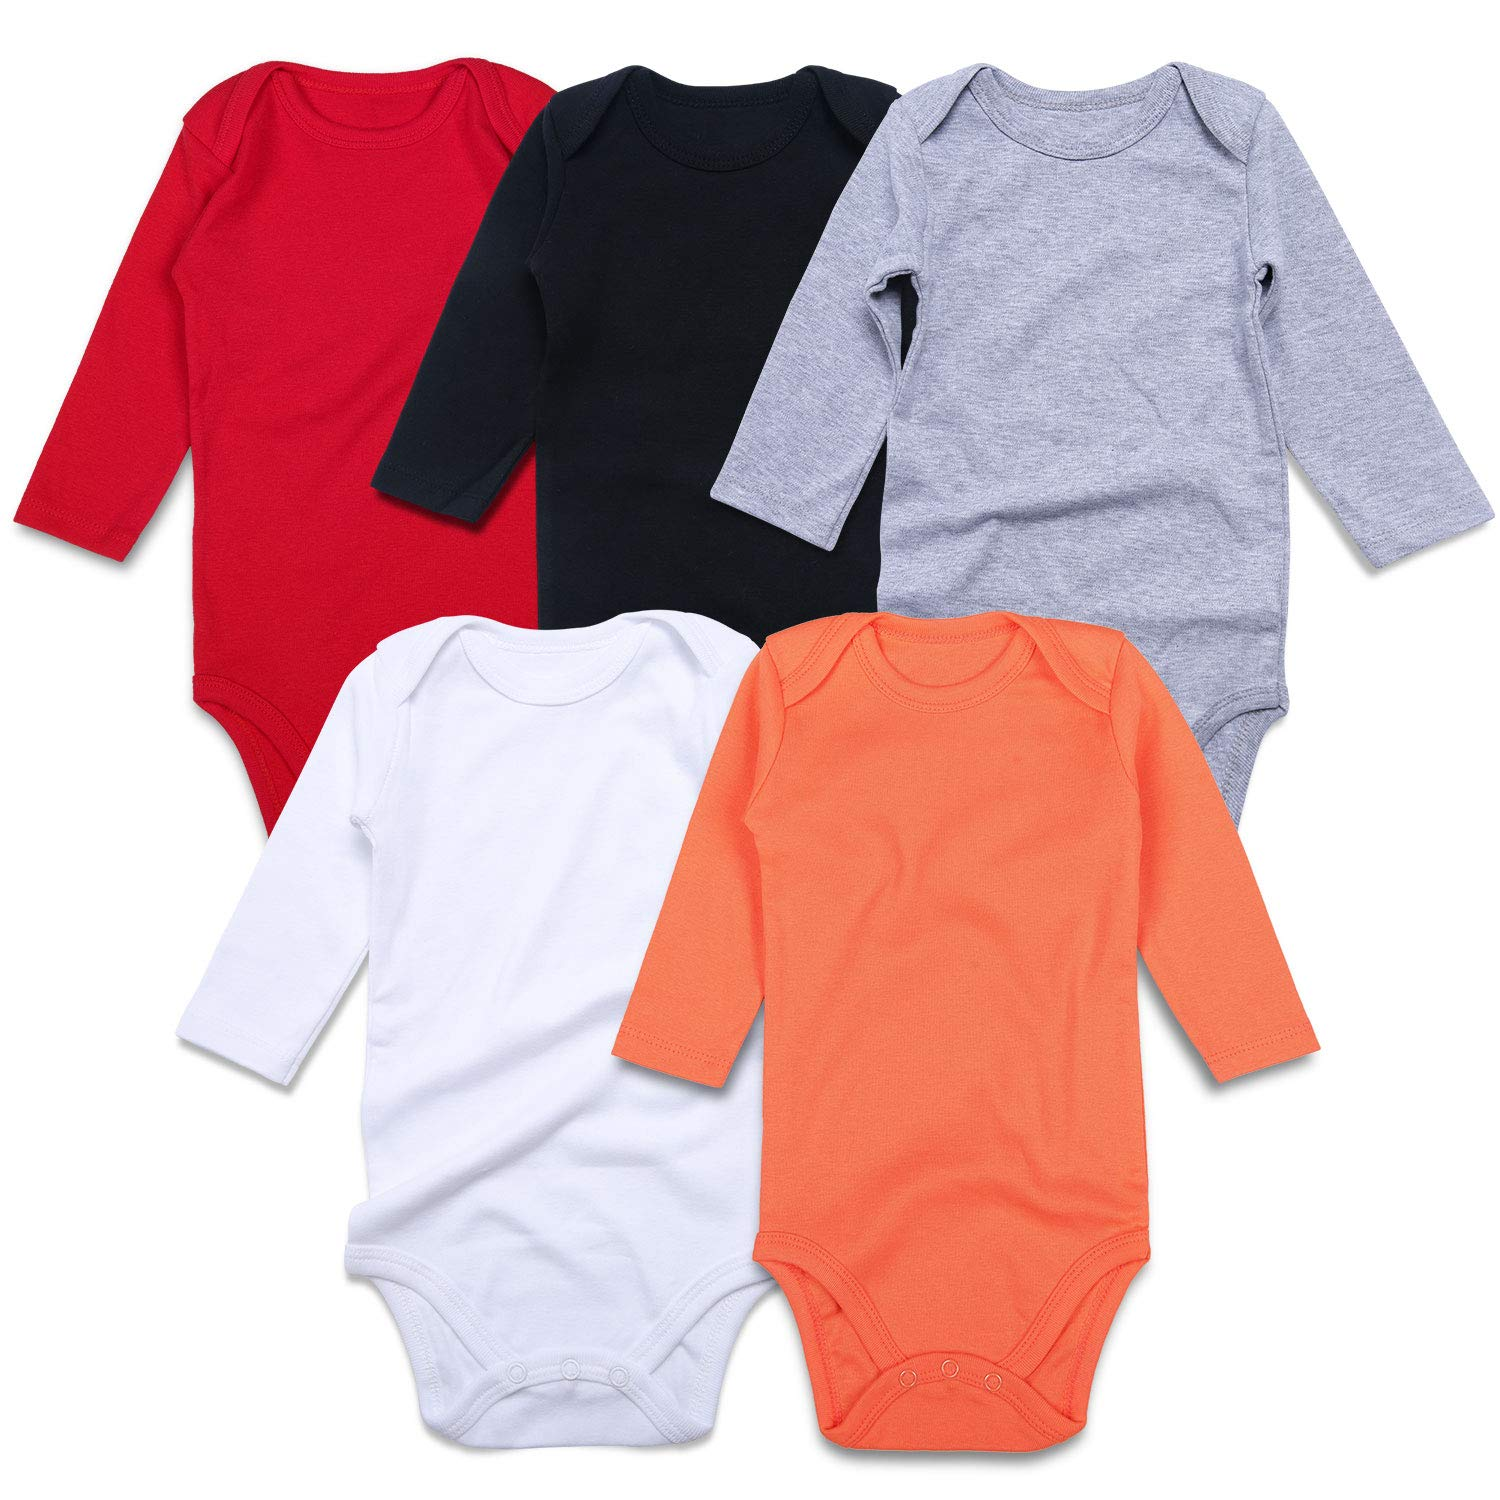 【10%OFF】 ROMPERINBOX SHIRT ユニセックスベビー Red B07GV62S7Z ROMPERINBOX Black SHIRT White Grey Red Orange Long Sleeve 5 Pack 3 - 6 Months, 東京グラス激安センター:94a5c28c --- movellplanejado.com.br